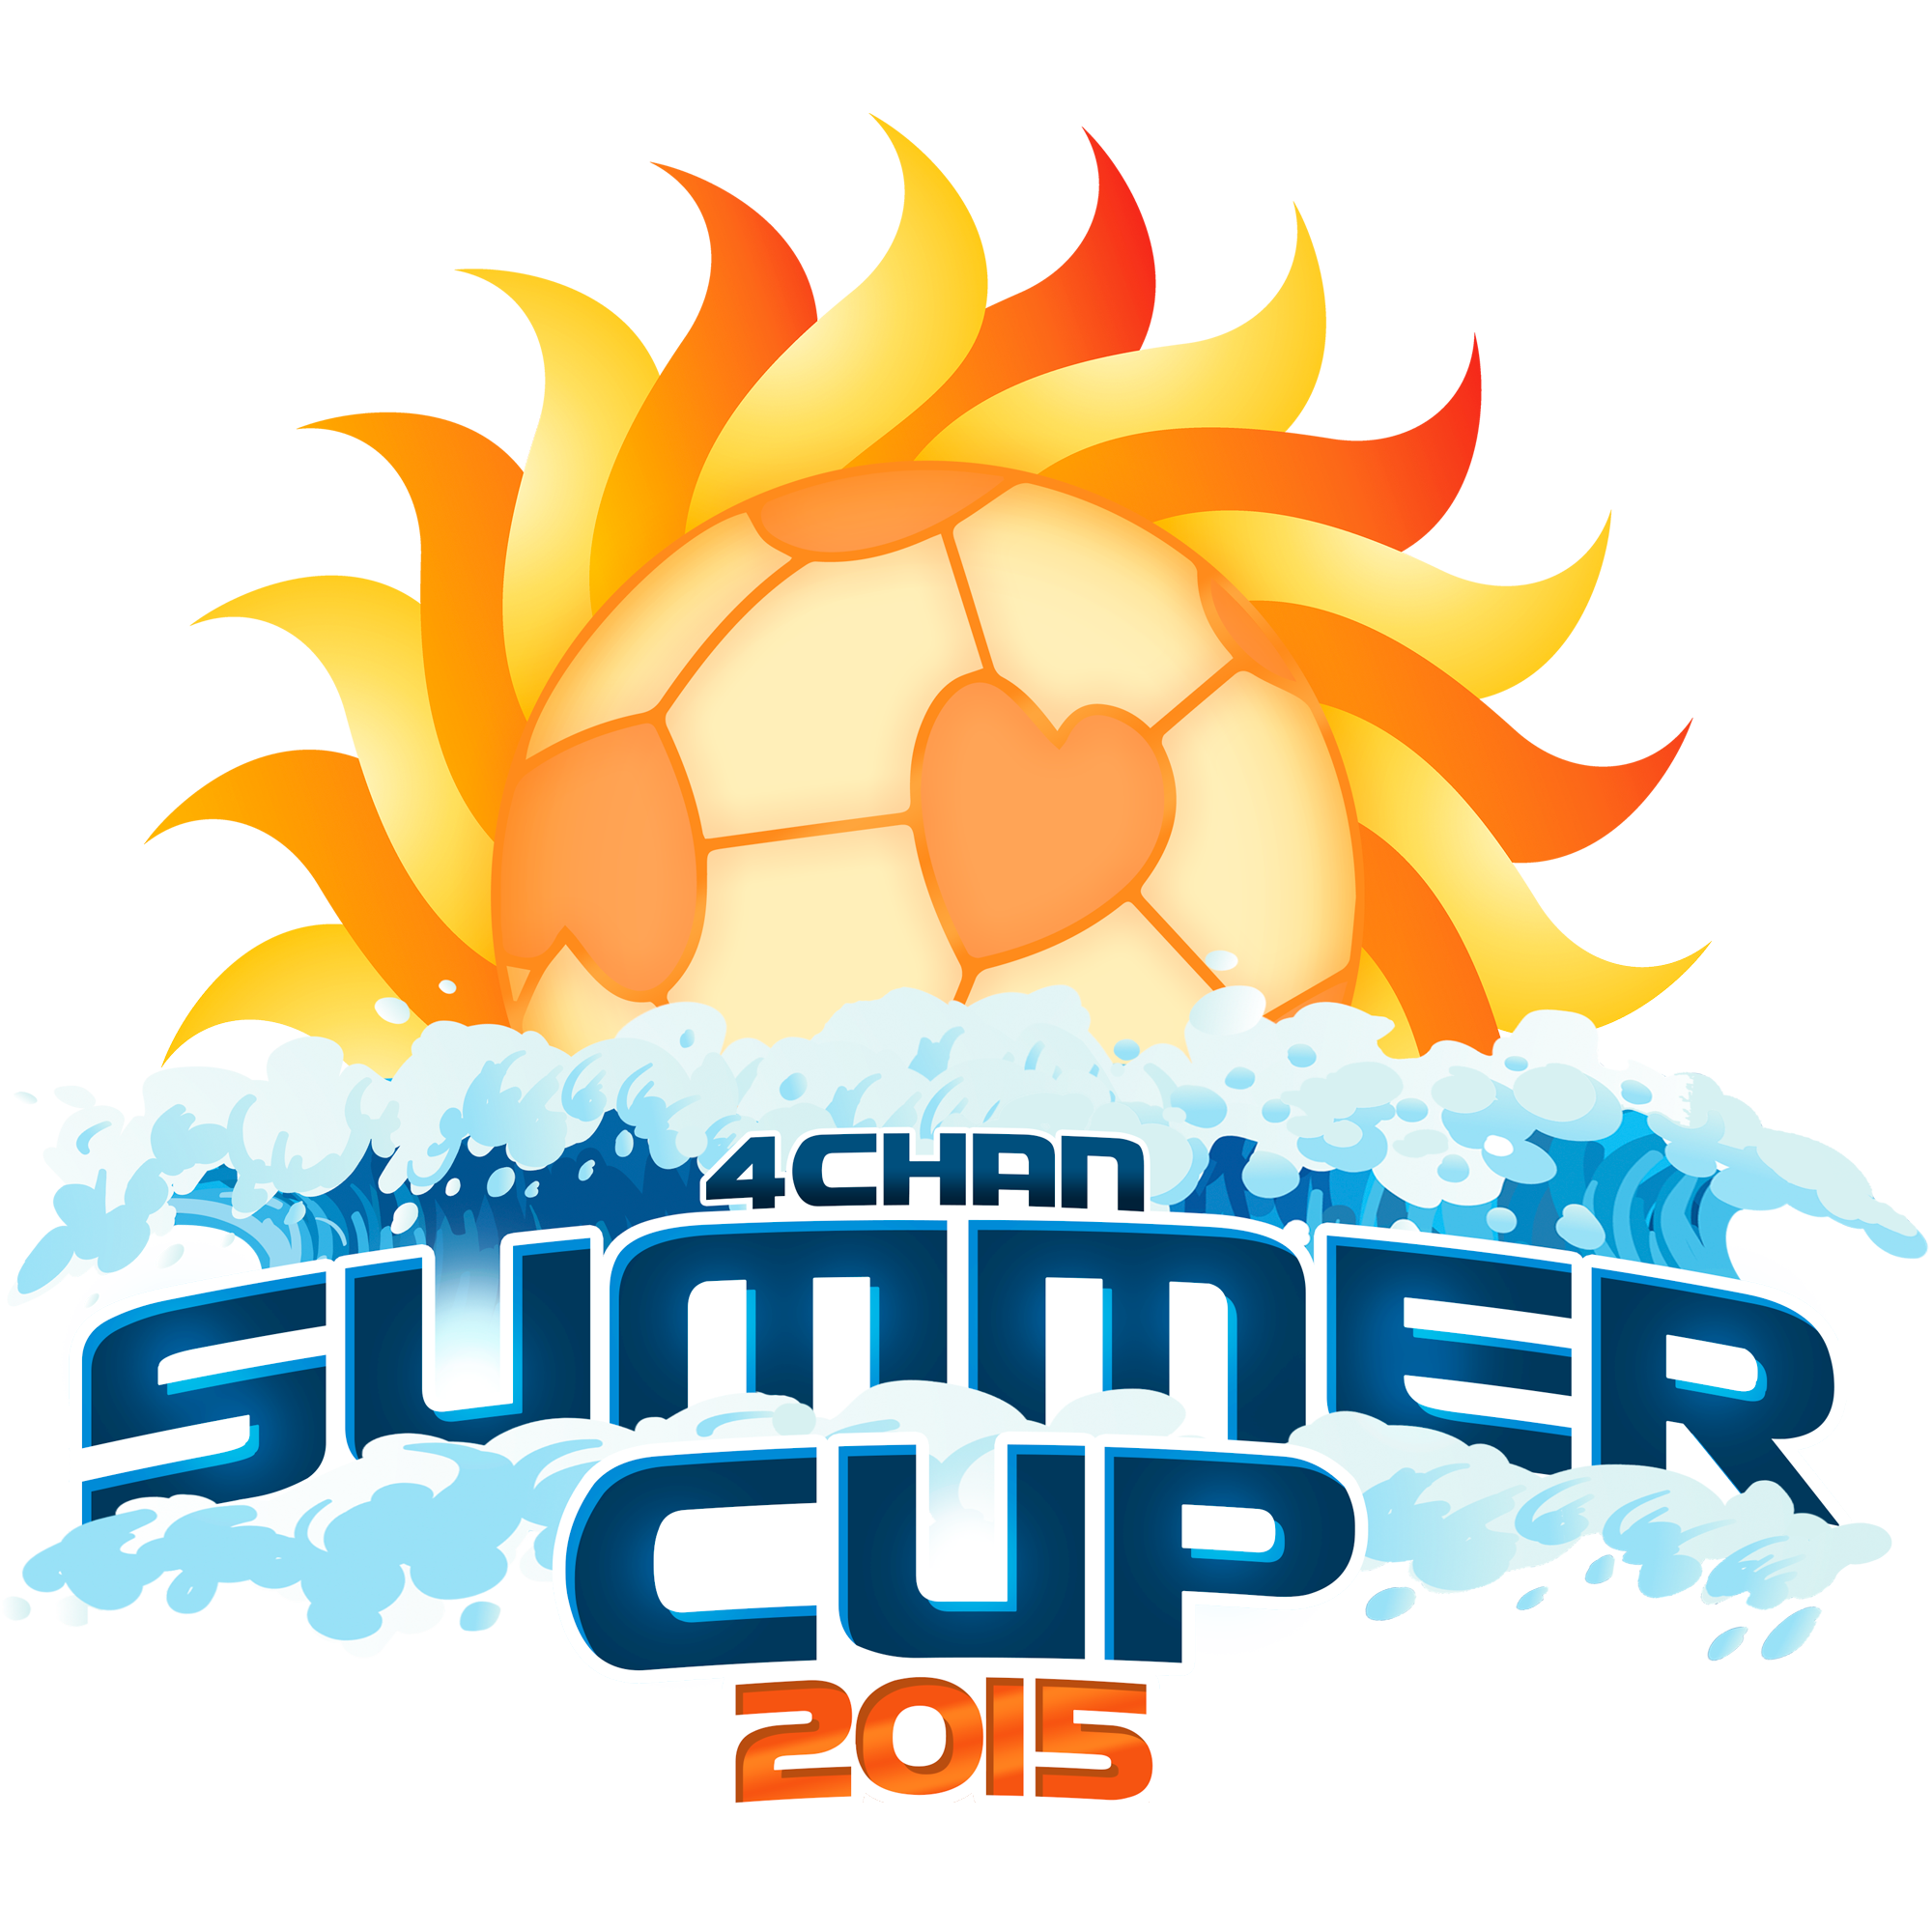 2015 4chan Summer Cup